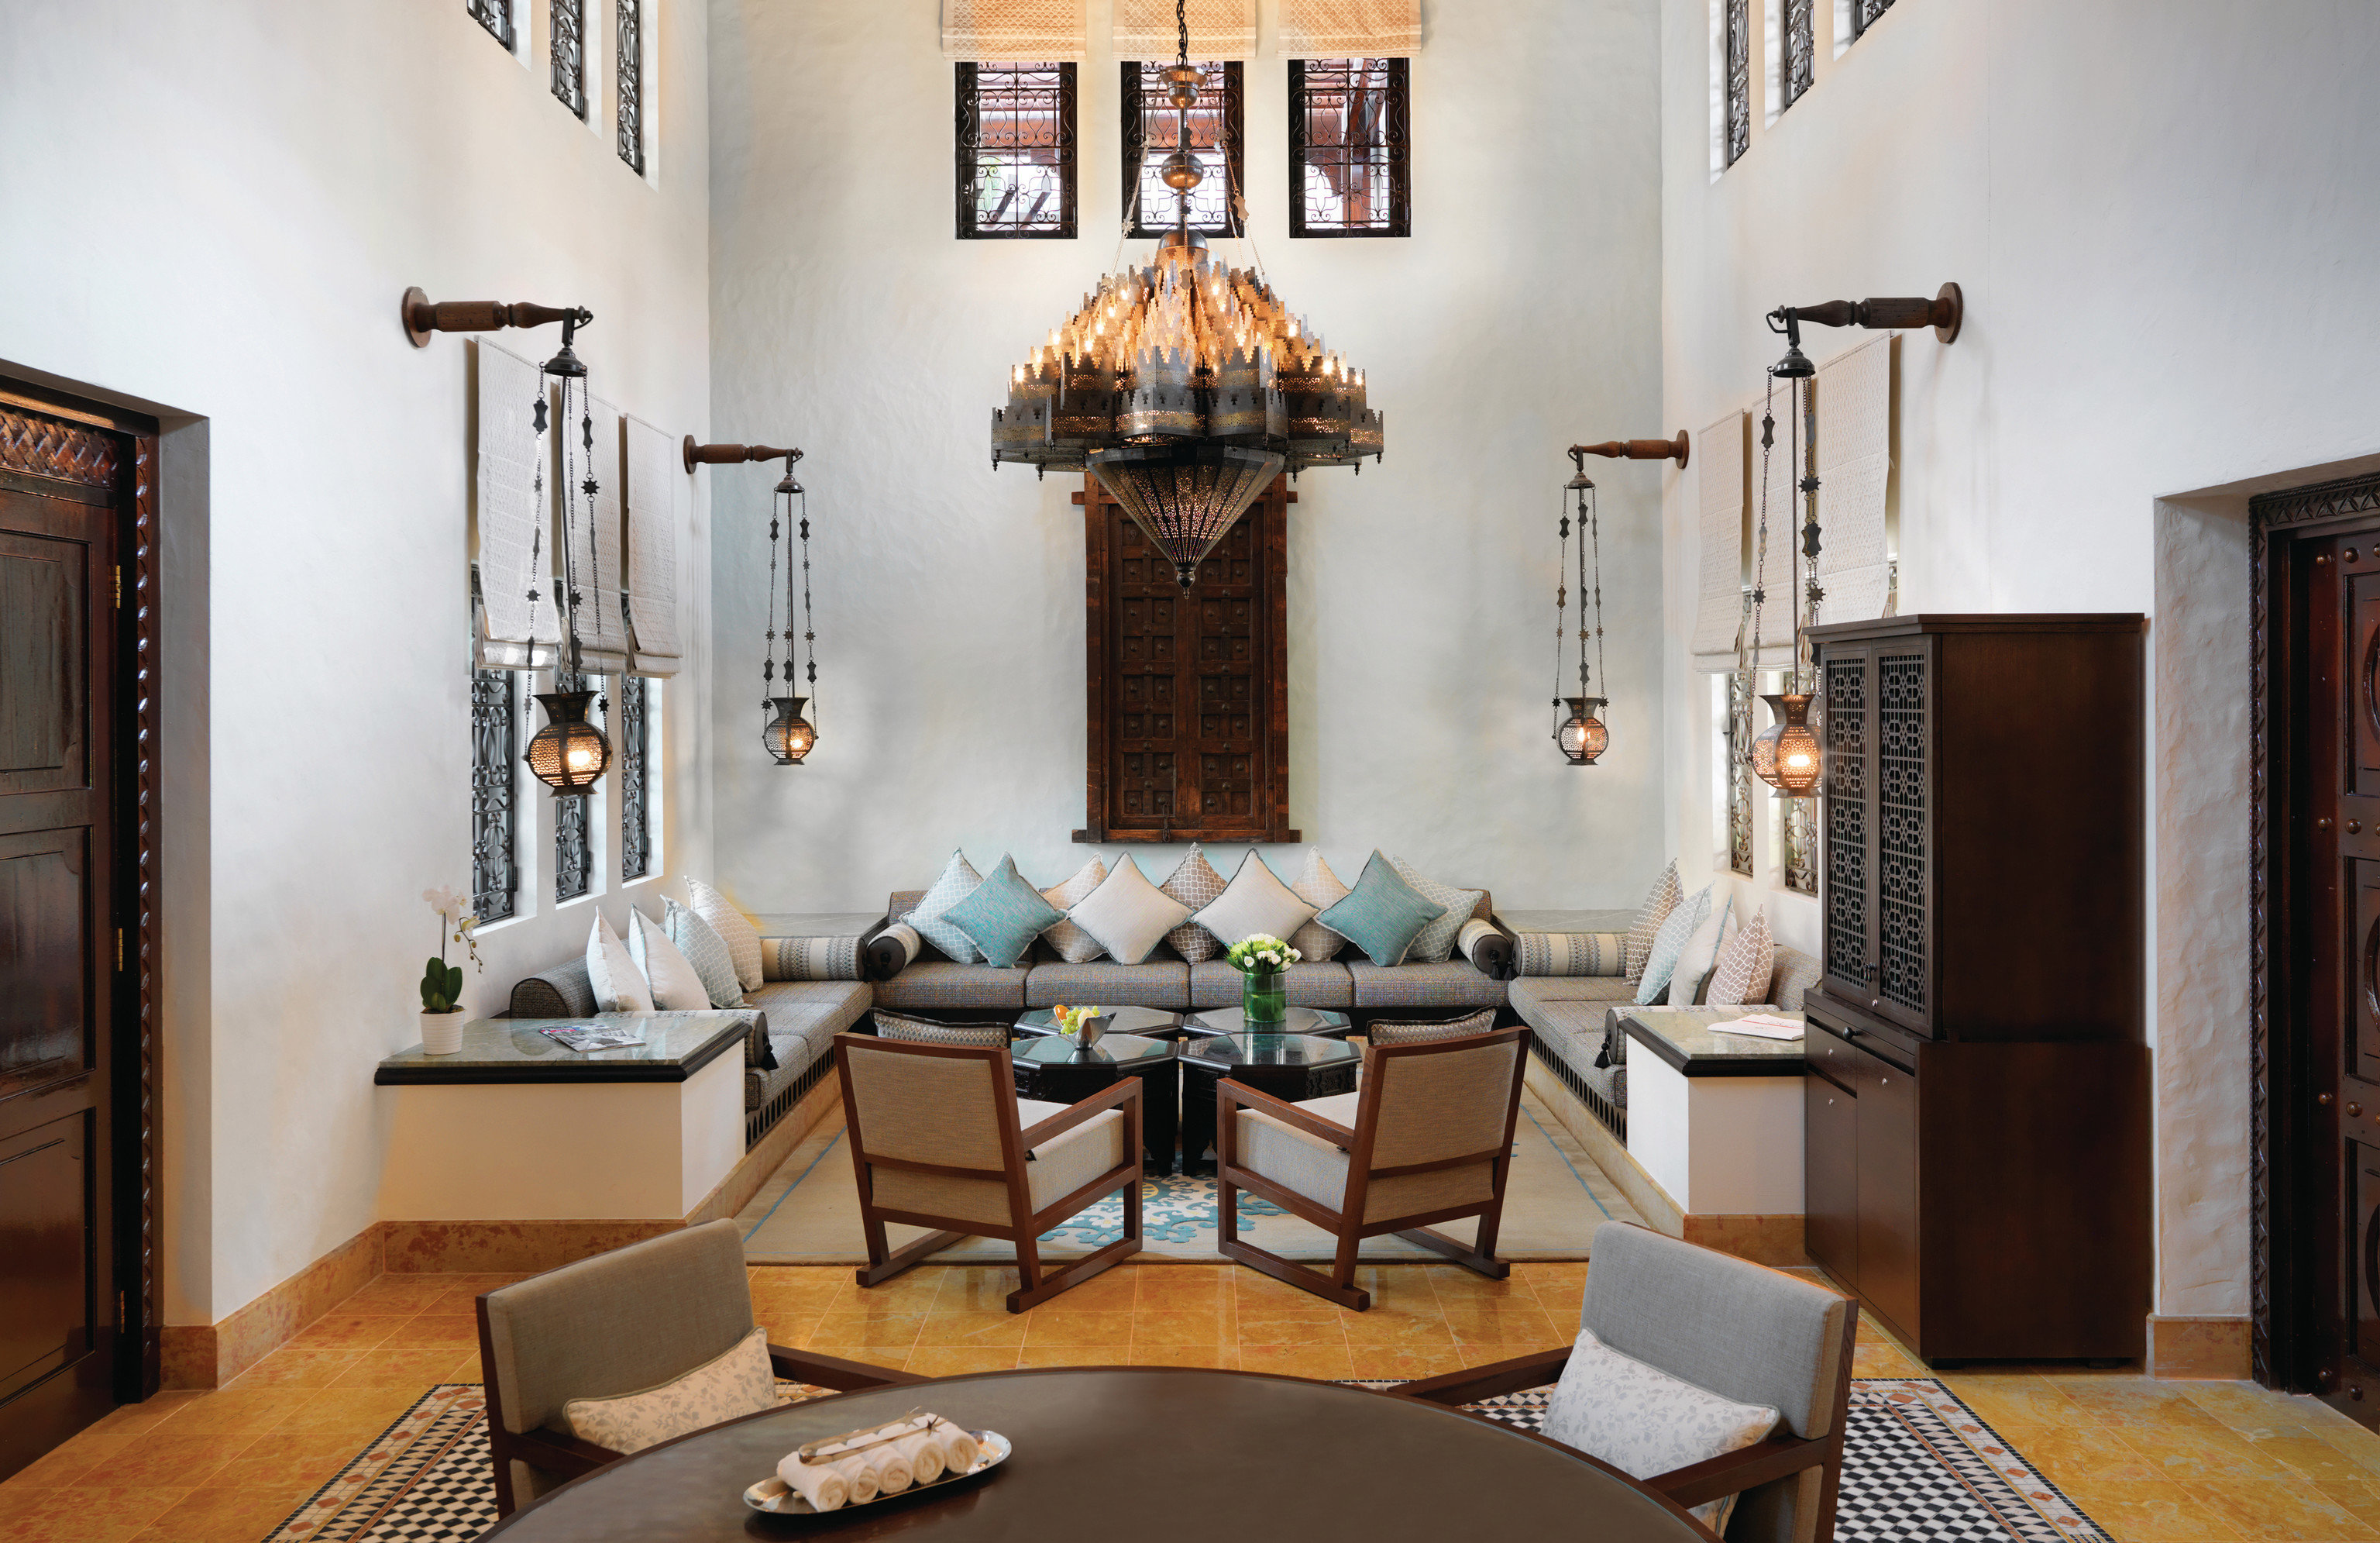 Dubai Hotels Luxury Travel Middle East wall indoor table floor room living room interior design Living furniture dining room home ceiling interior designer